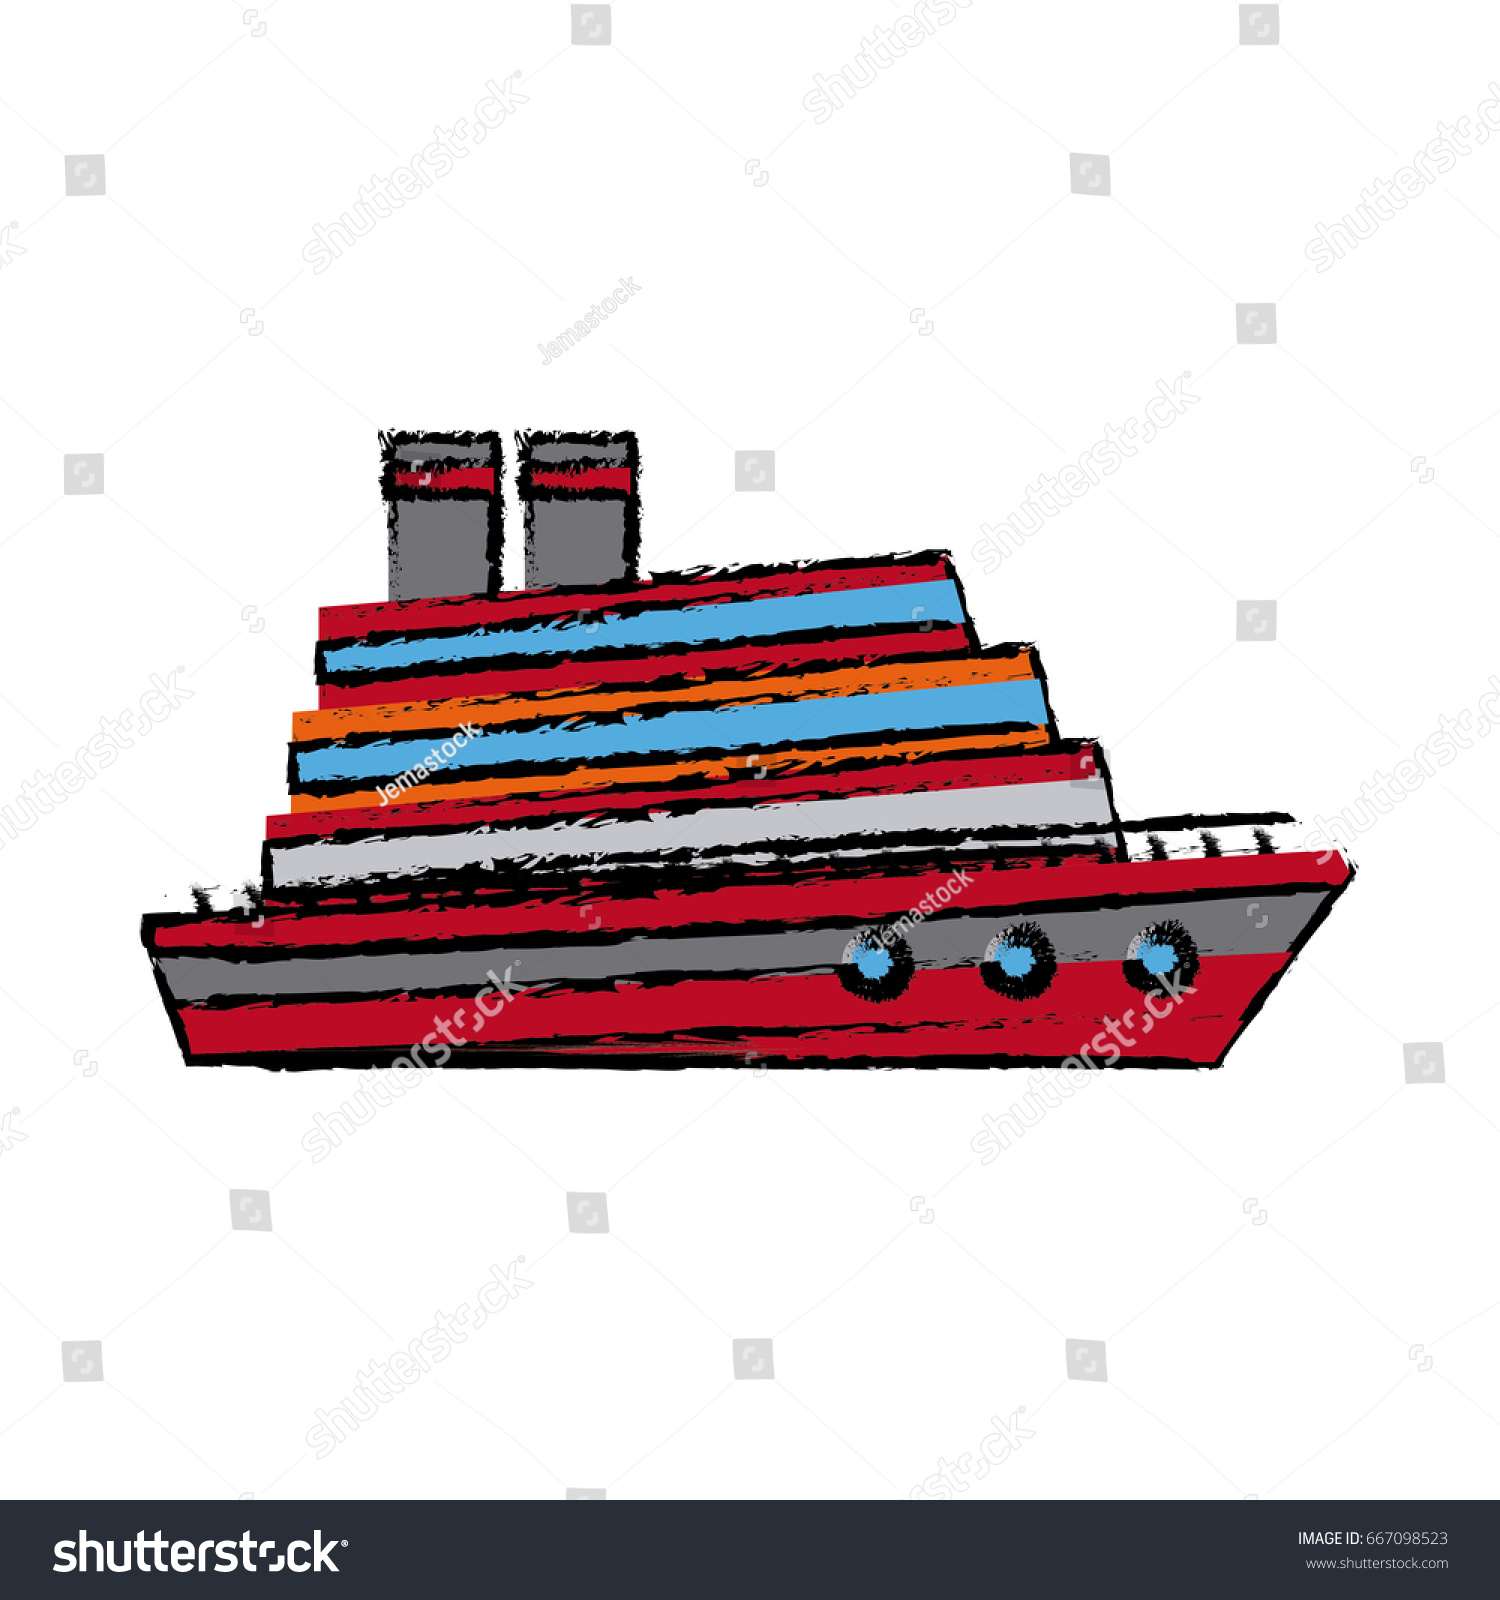 Cruise Ship Boat Vacation Steam Transport Stock Vector - Diagram of a cruise ship